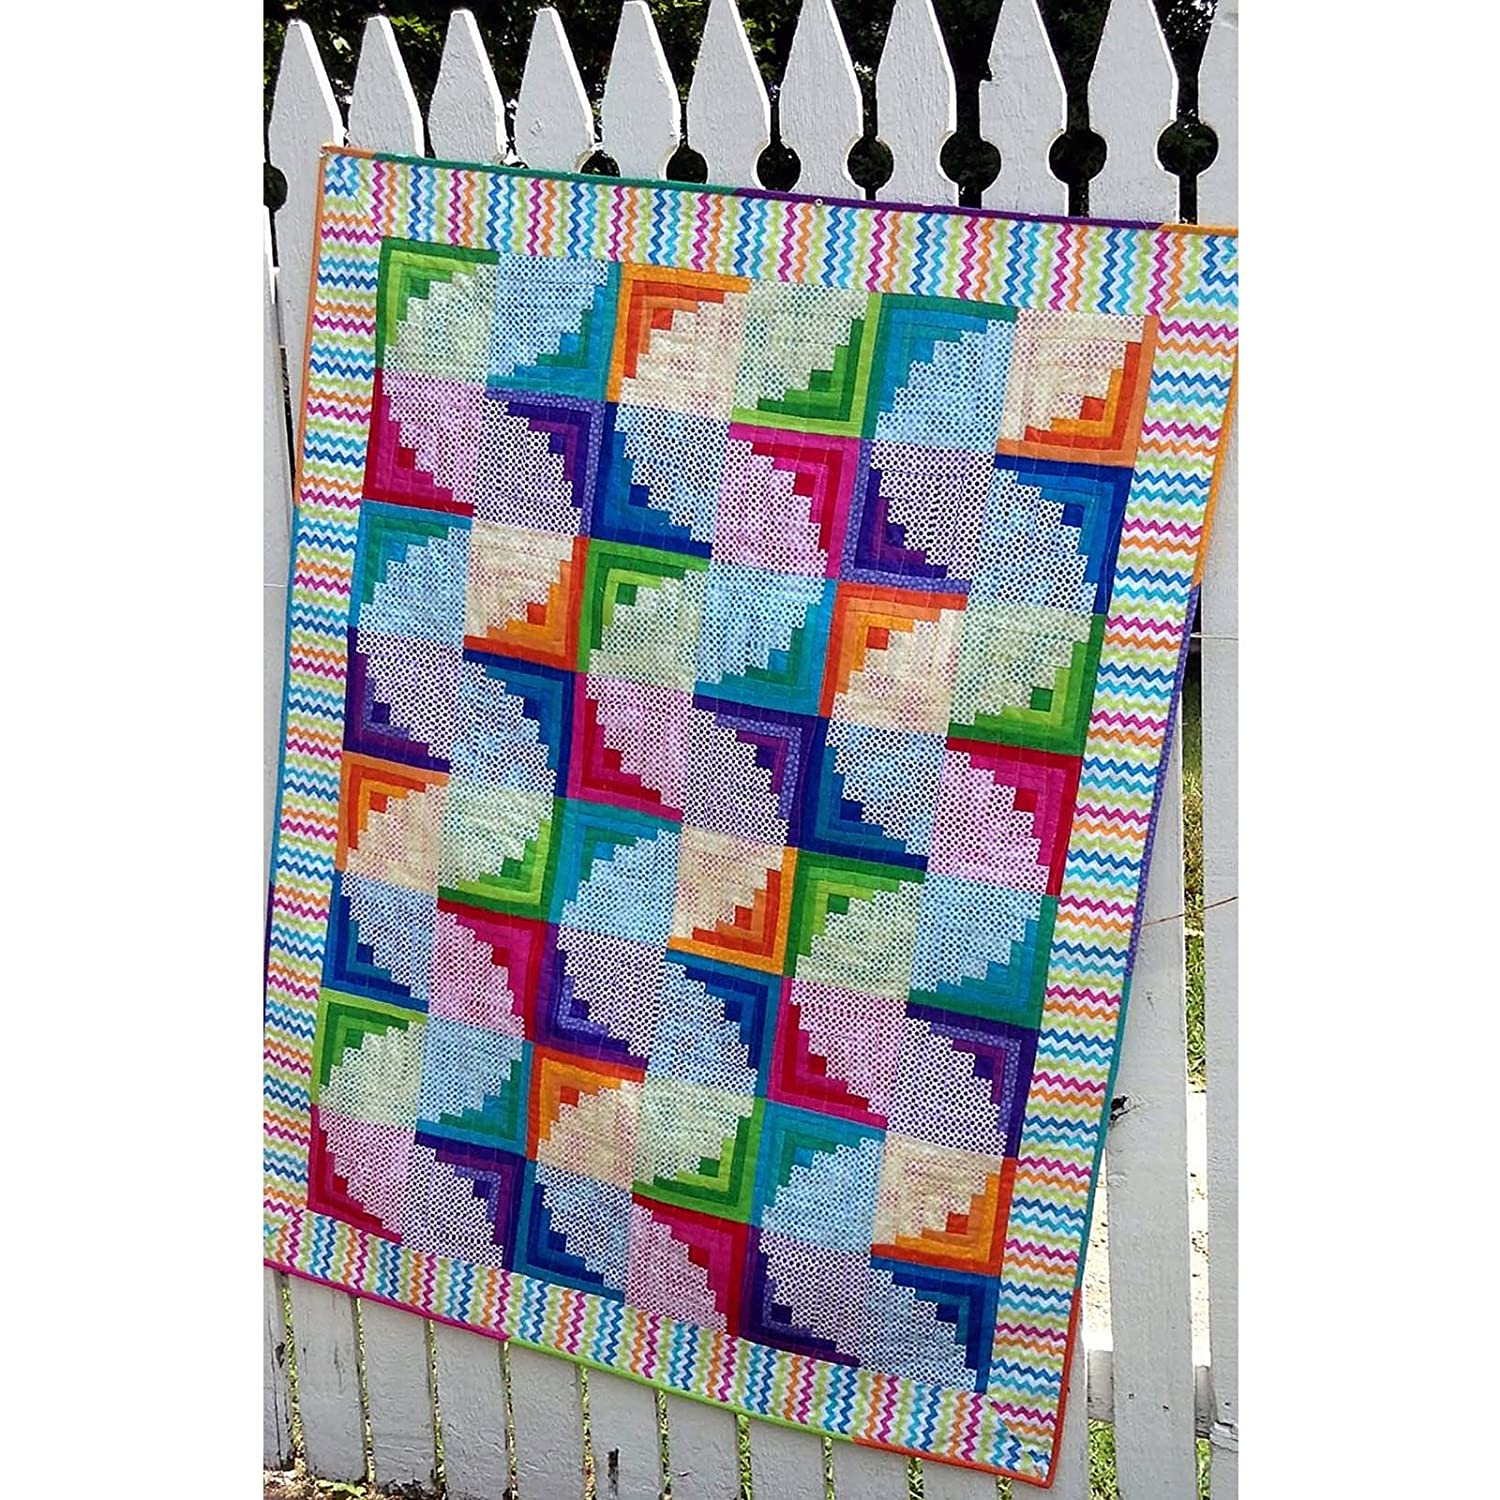 Wiggly Worms Curvy Log Cabin Quilt Pattern by Cut Loose Press and Natural Comforts Quilting